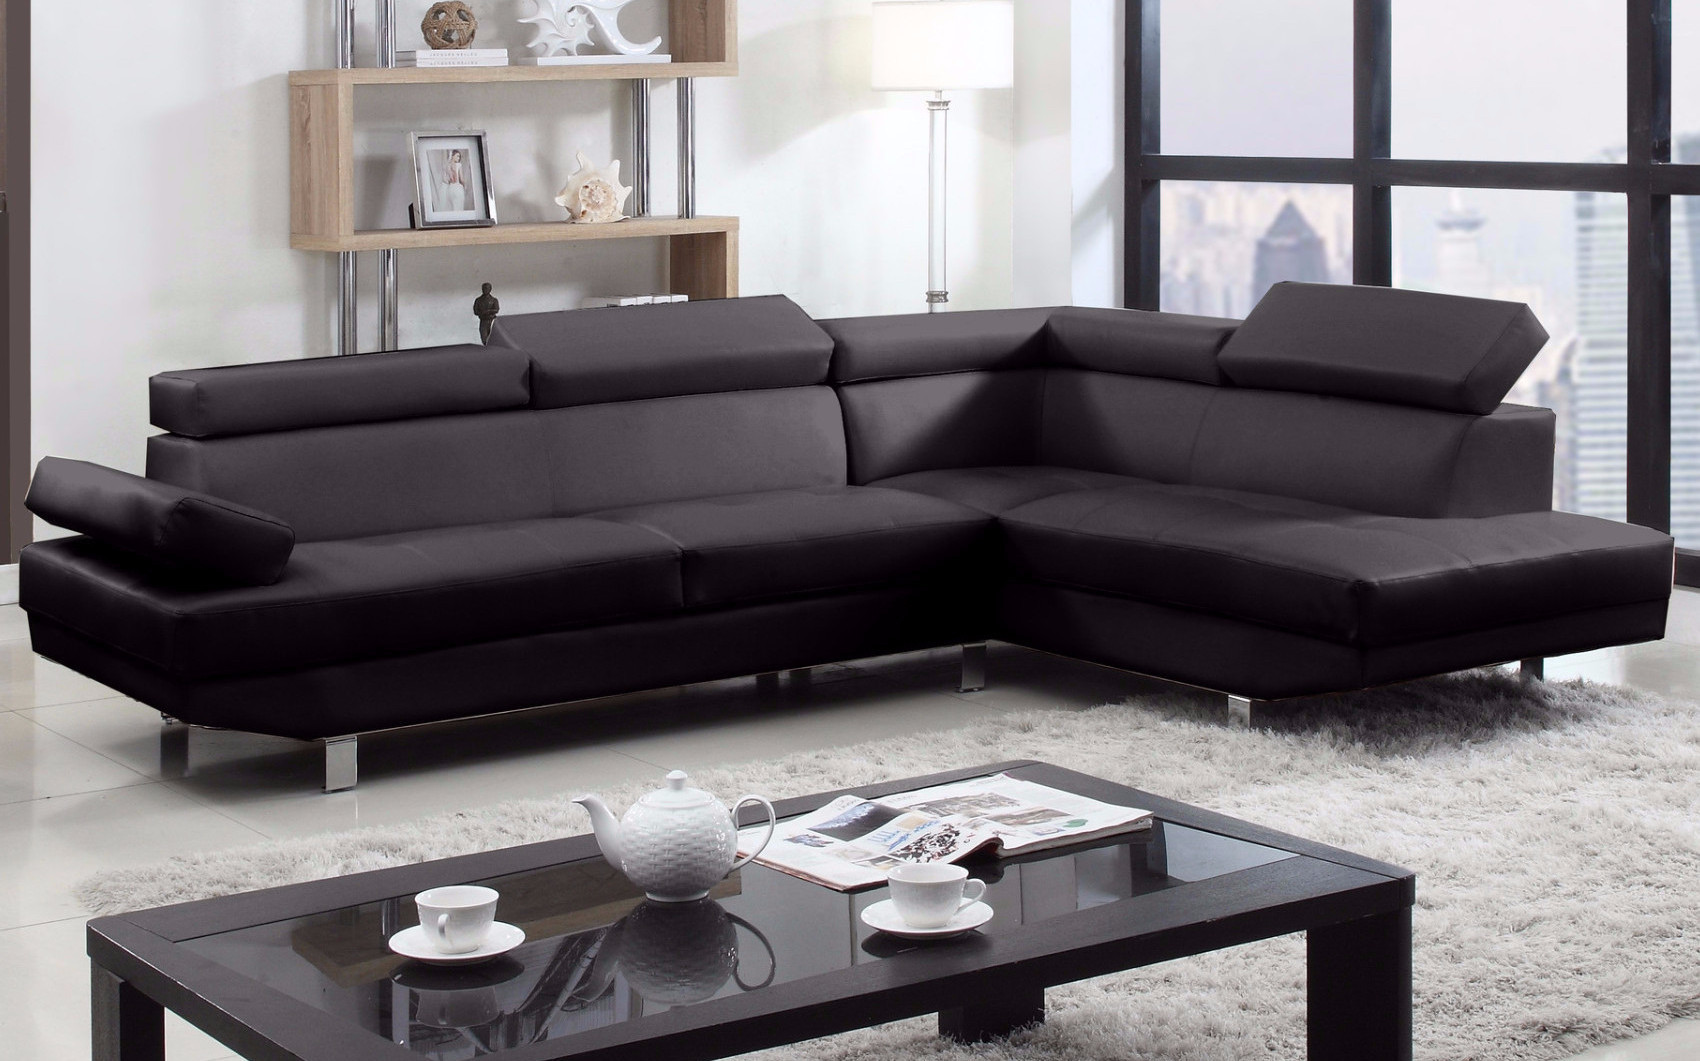 2 Piece Modern Bonded Leather Right Facing Chaise Sectional Sofa